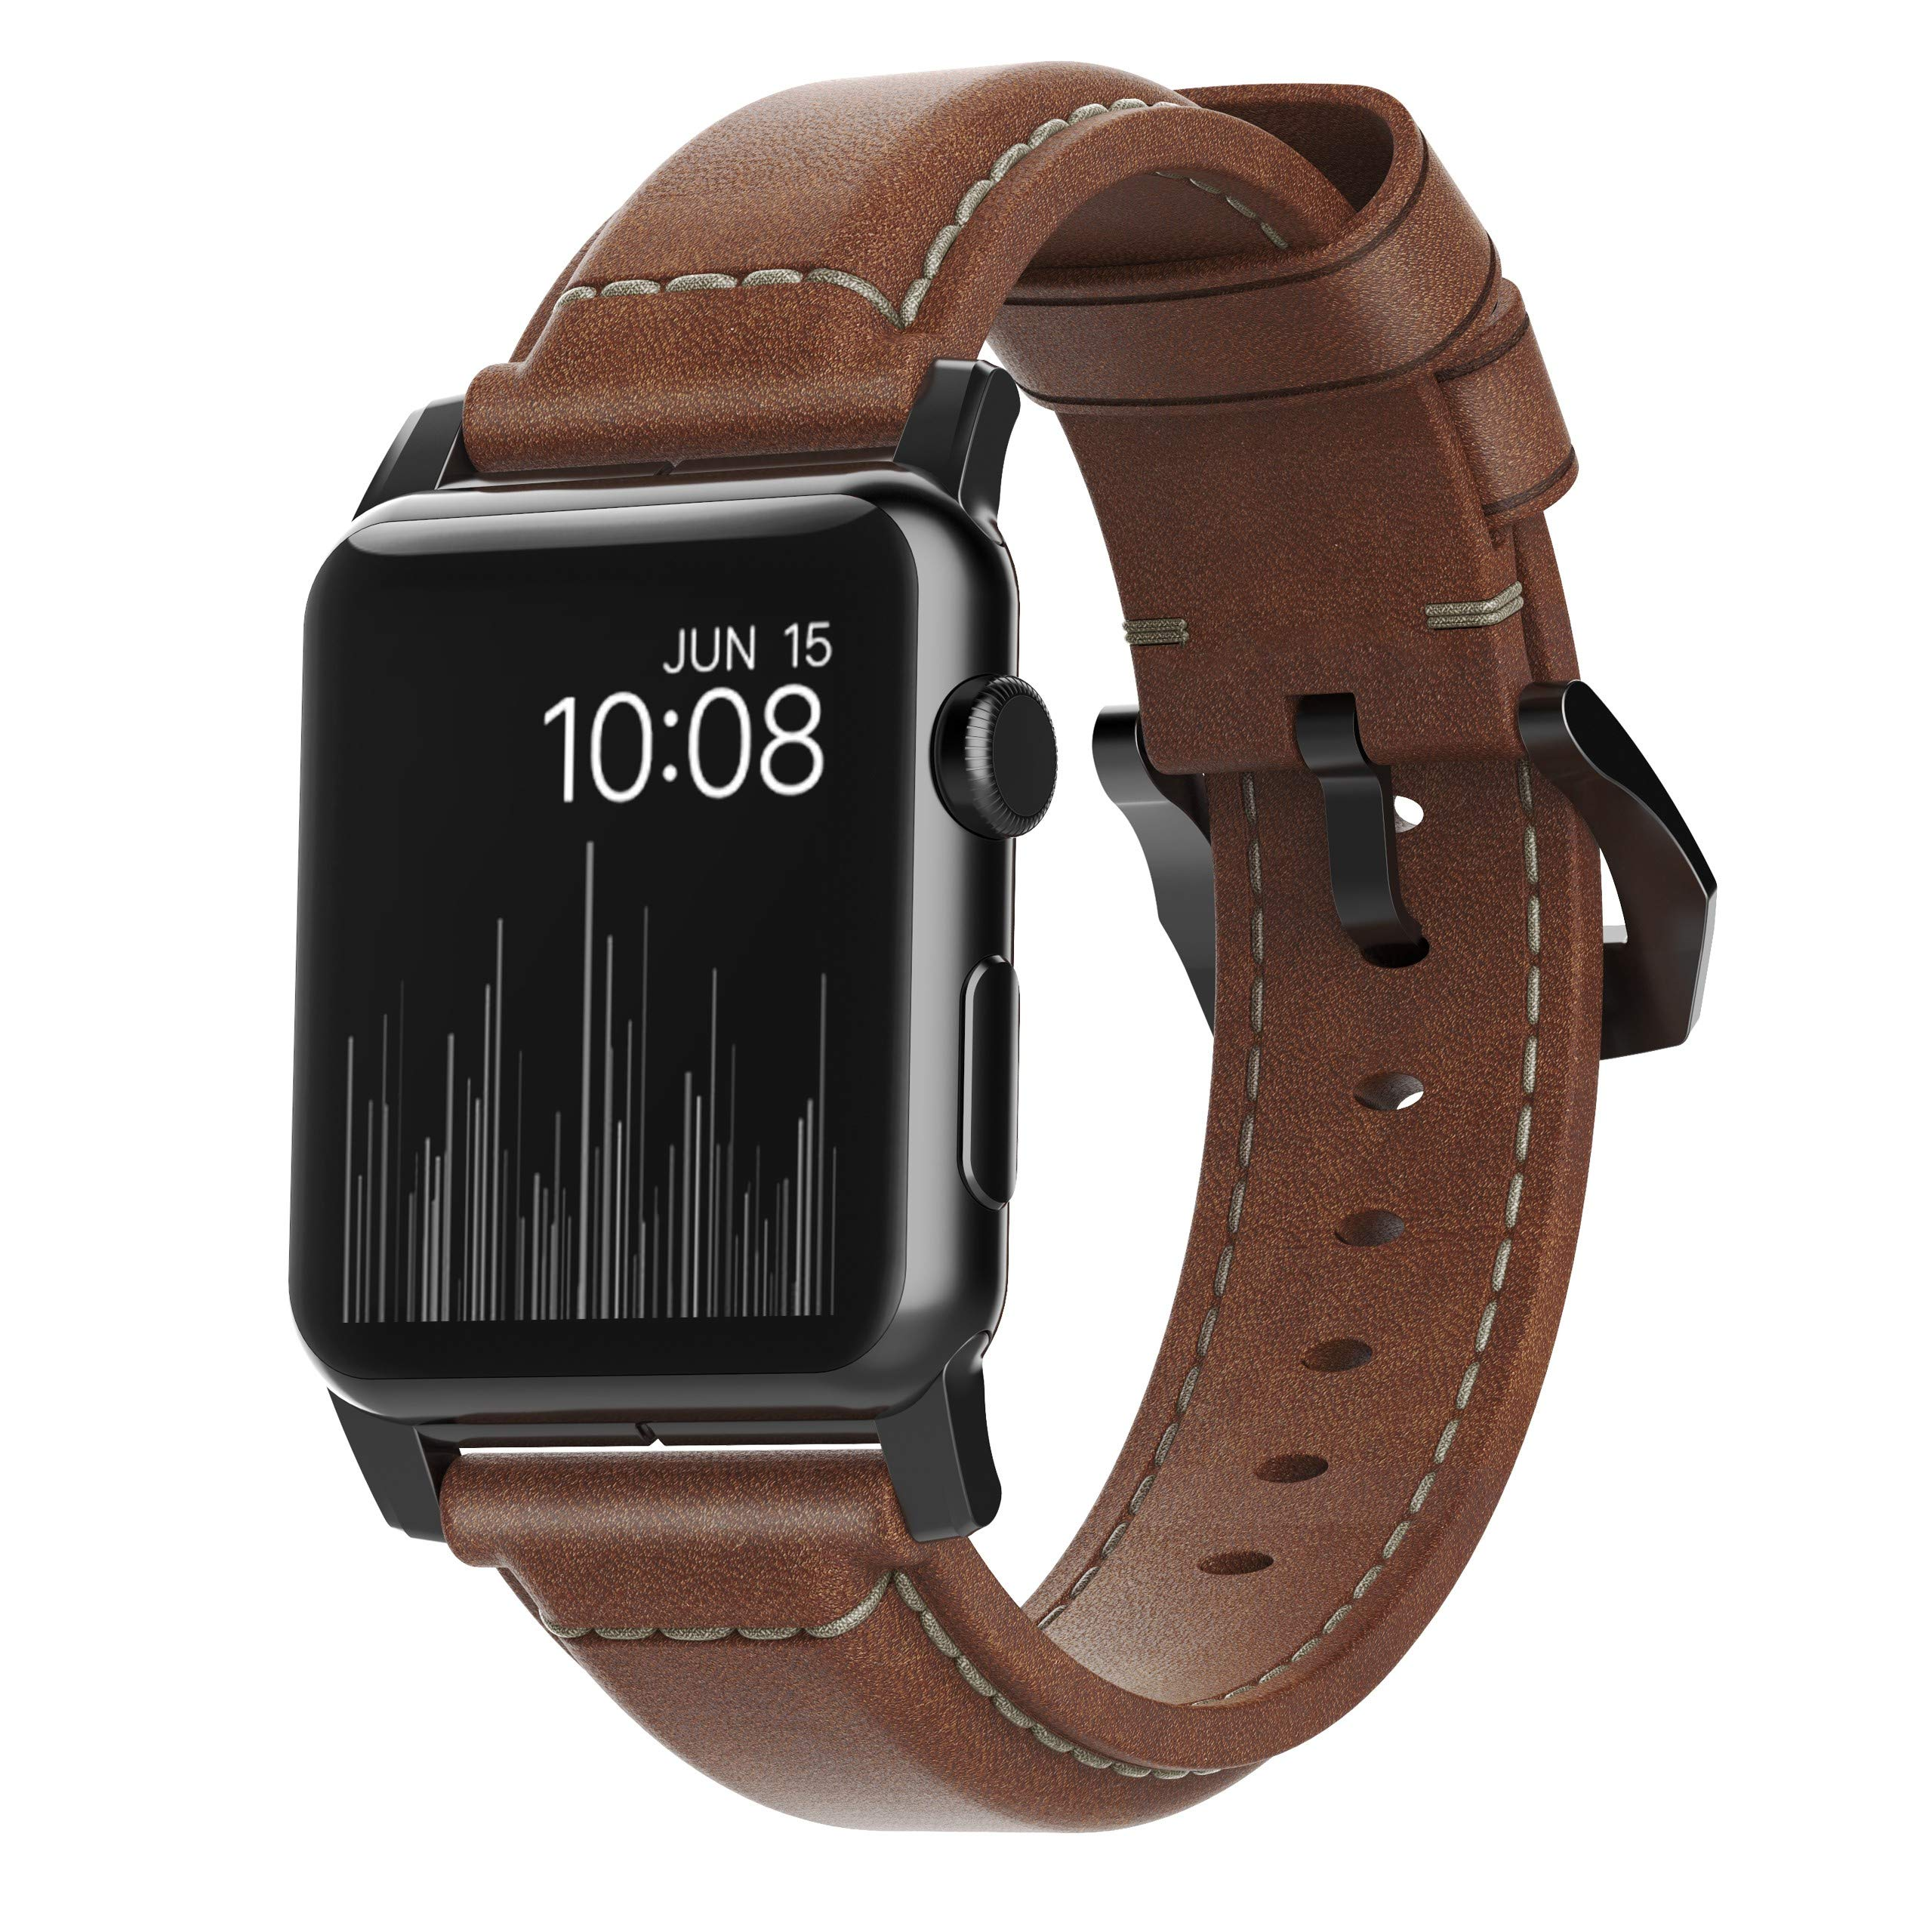 Nomad Horween Leather Strap for Apple Watch - 42mm Traditional Build - Classic Bold Look - Custom Stainless Steel Lugs and Buckle - Black Hardware